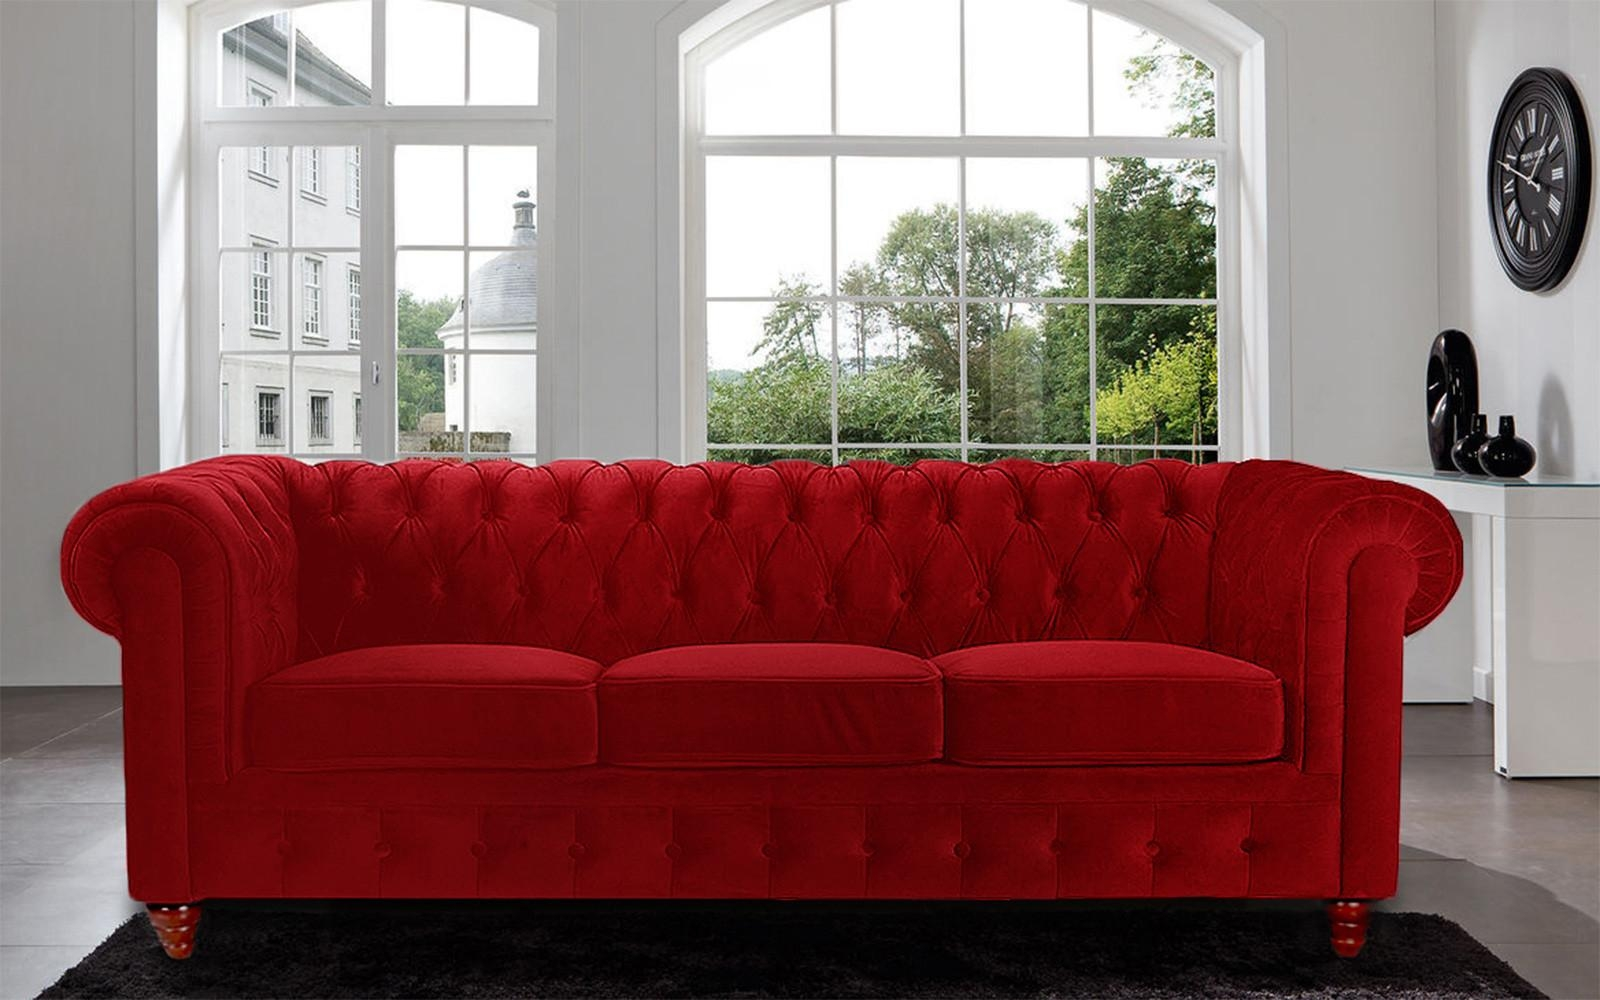 Sofas Center : Amazing Velvet Chesterfielda Image Inspirations Regarding Red Leather Chesterfield Sofas (Image 14 of 20)